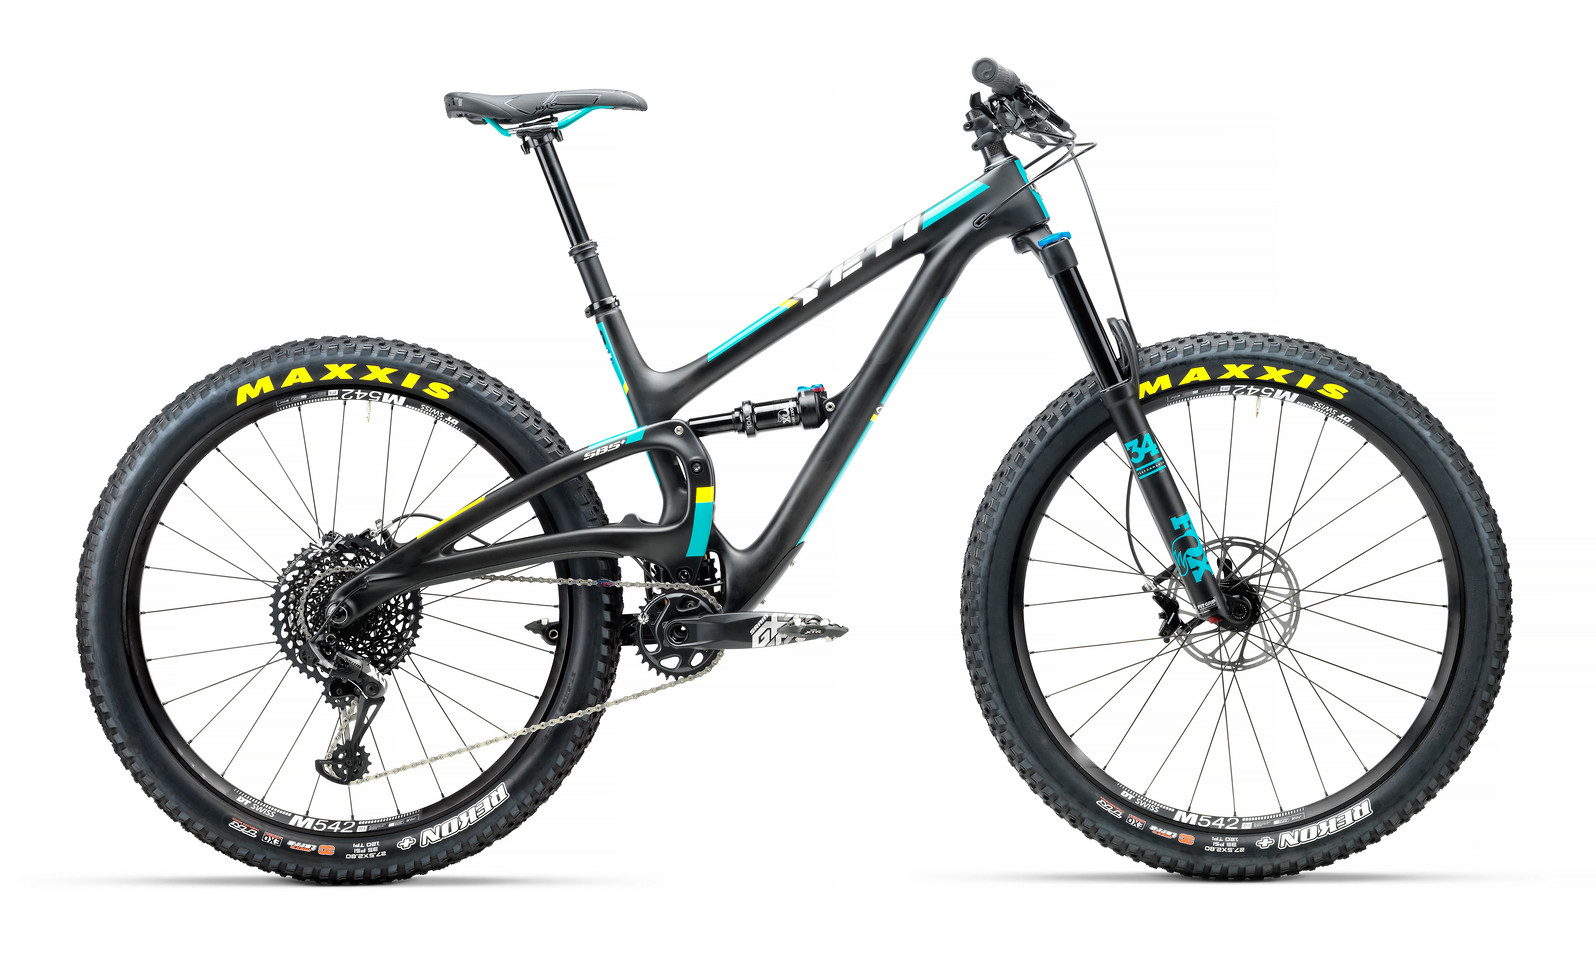 2018_Yeti_SB5%2B_Carbon_GX_Eagle_black